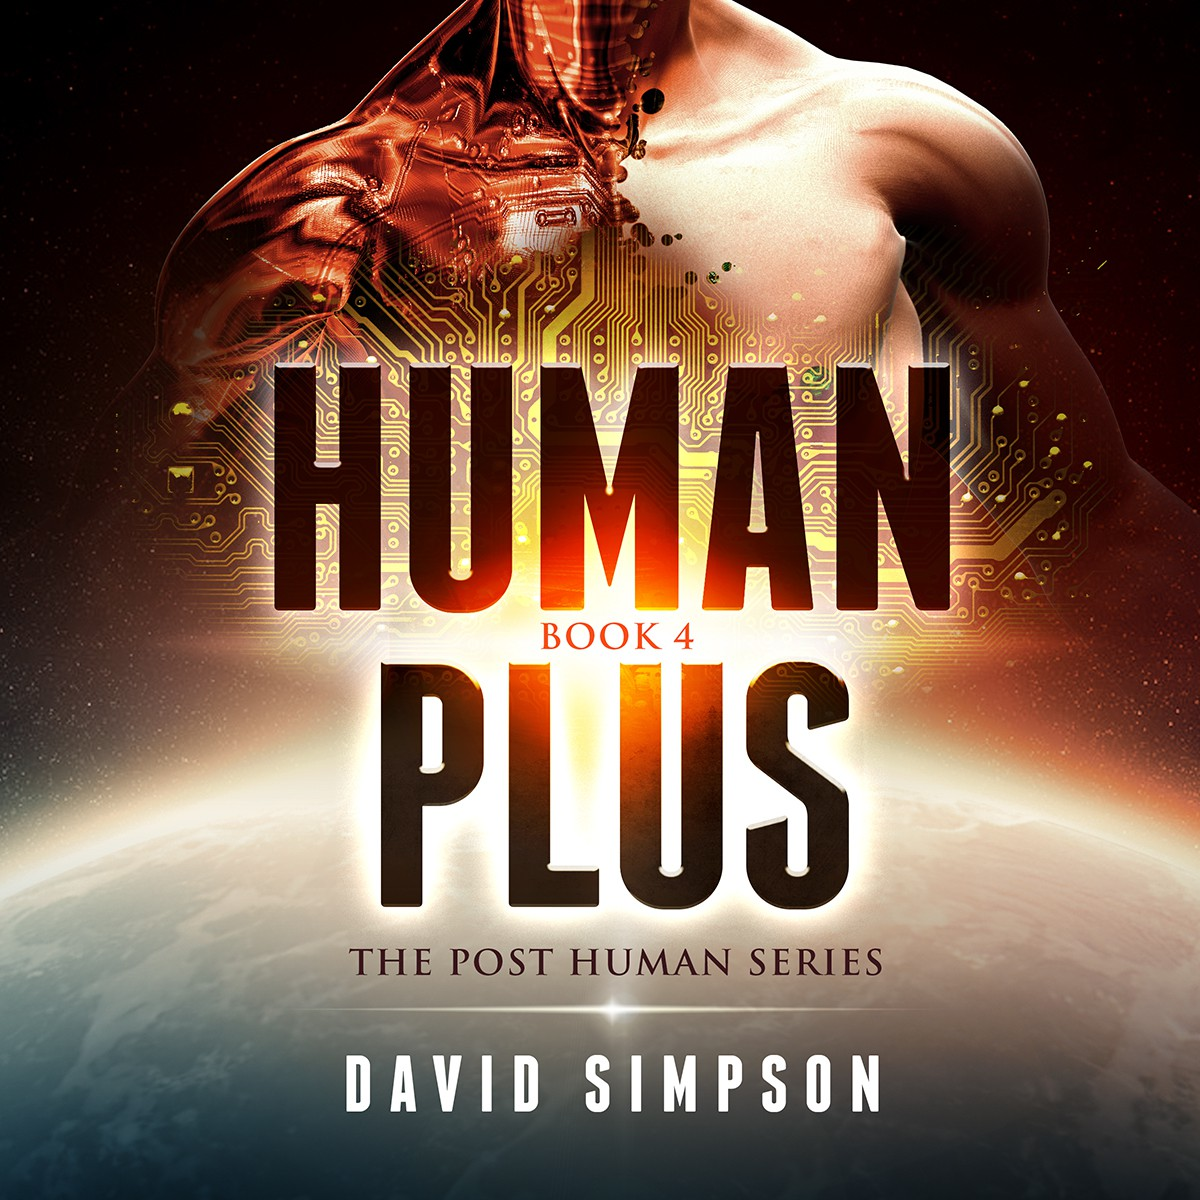 Book Cover Design - Sci-Fi Human/technology integration / Artificial Intelligence story